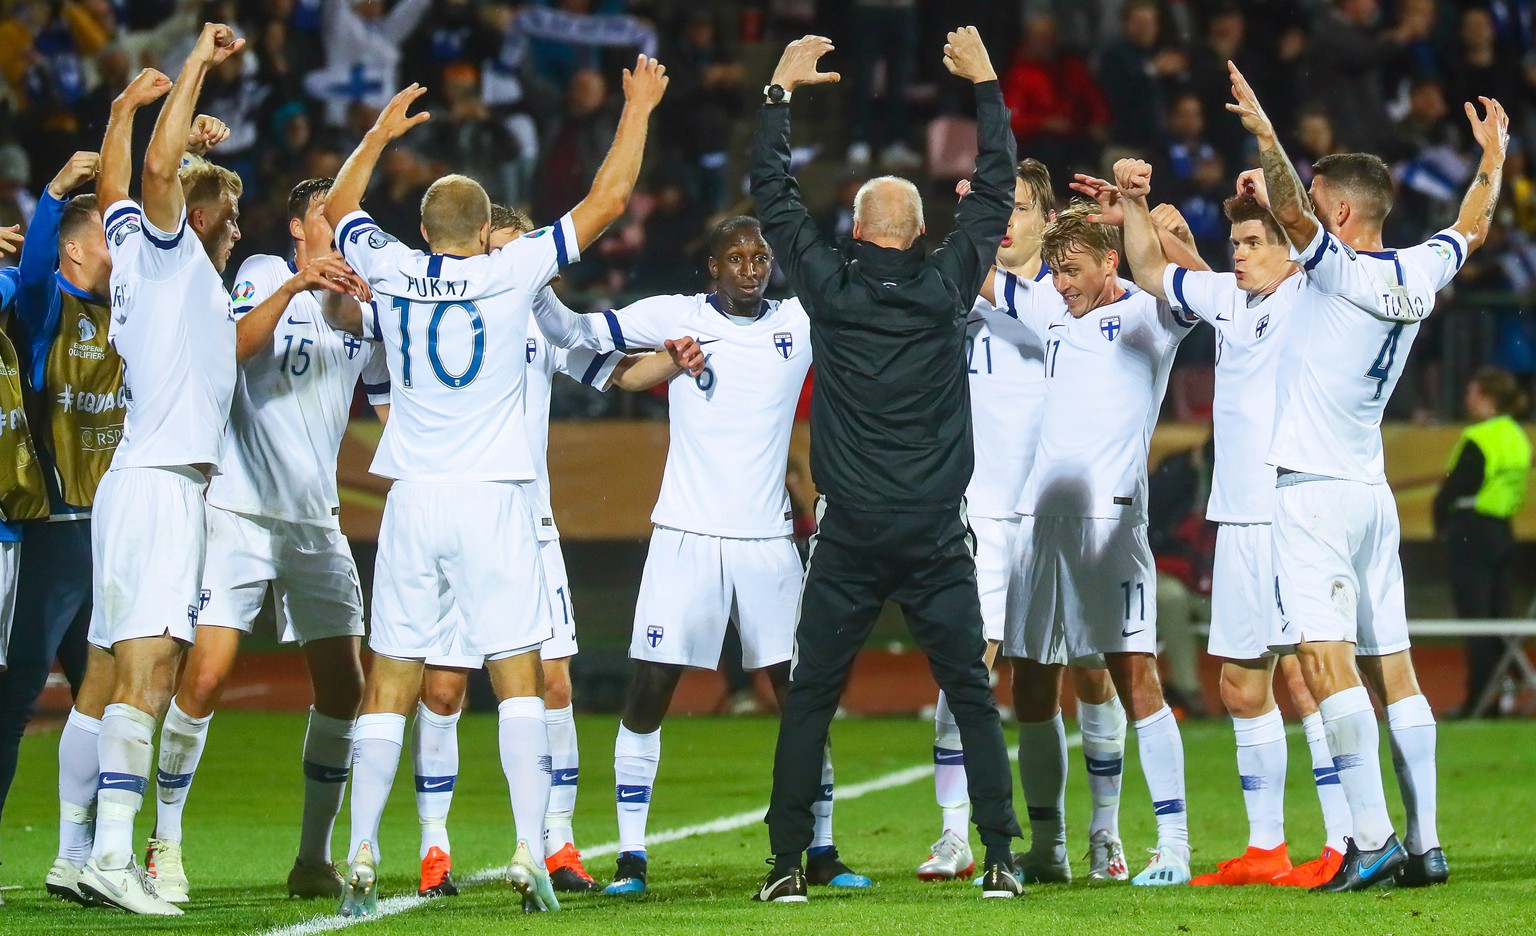 epa07828738 Teemu Pukki (C-L) of Finland celebrates with teammates after scoring the 1-1 equalizer from the penalty spot during the UEFA EURO 2020 group J qualifying soccer match between Finland and Italy in Tampere, Finland, 08 September 2019.  EPA/MAURI RATILAINEN